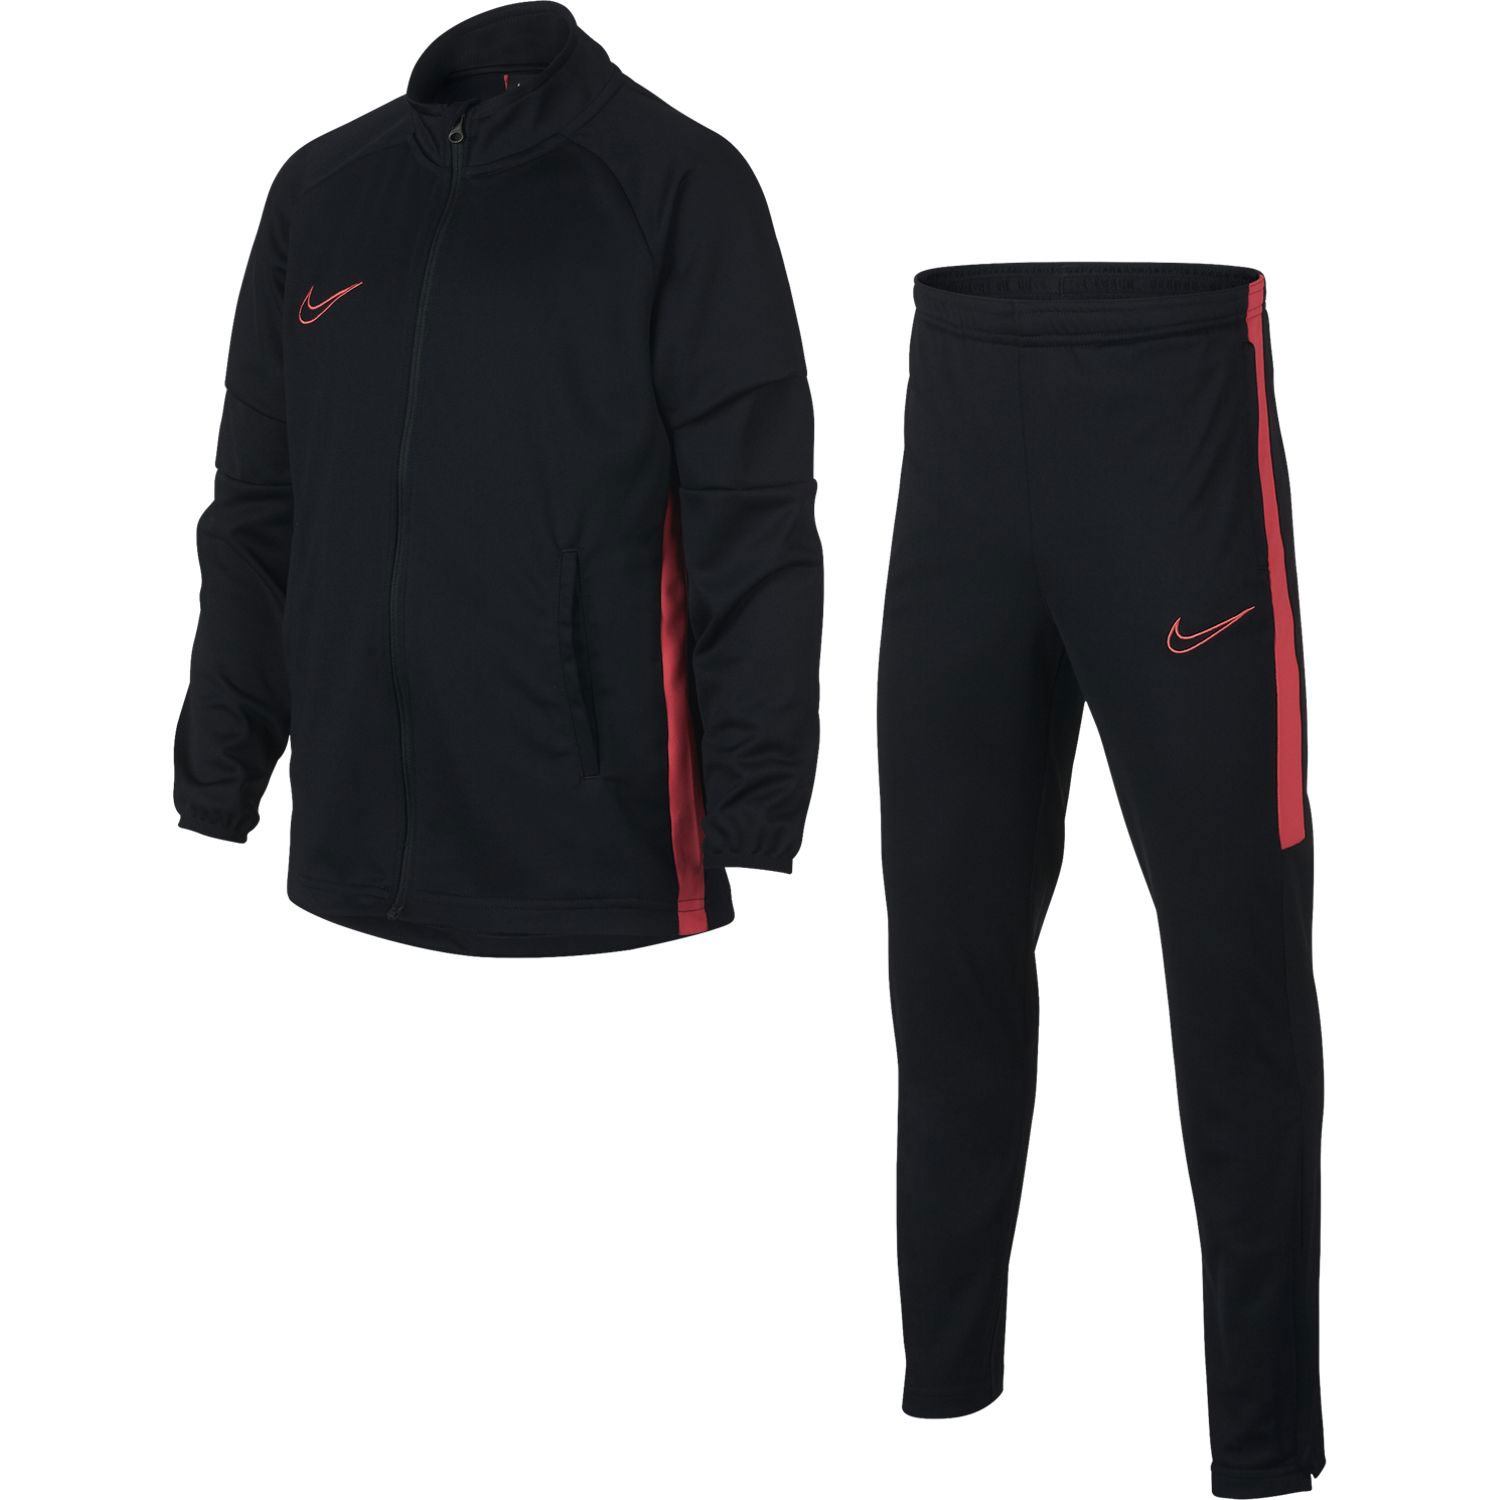 NIKE DRI-FIT ACADEMY AO0794-013 JR